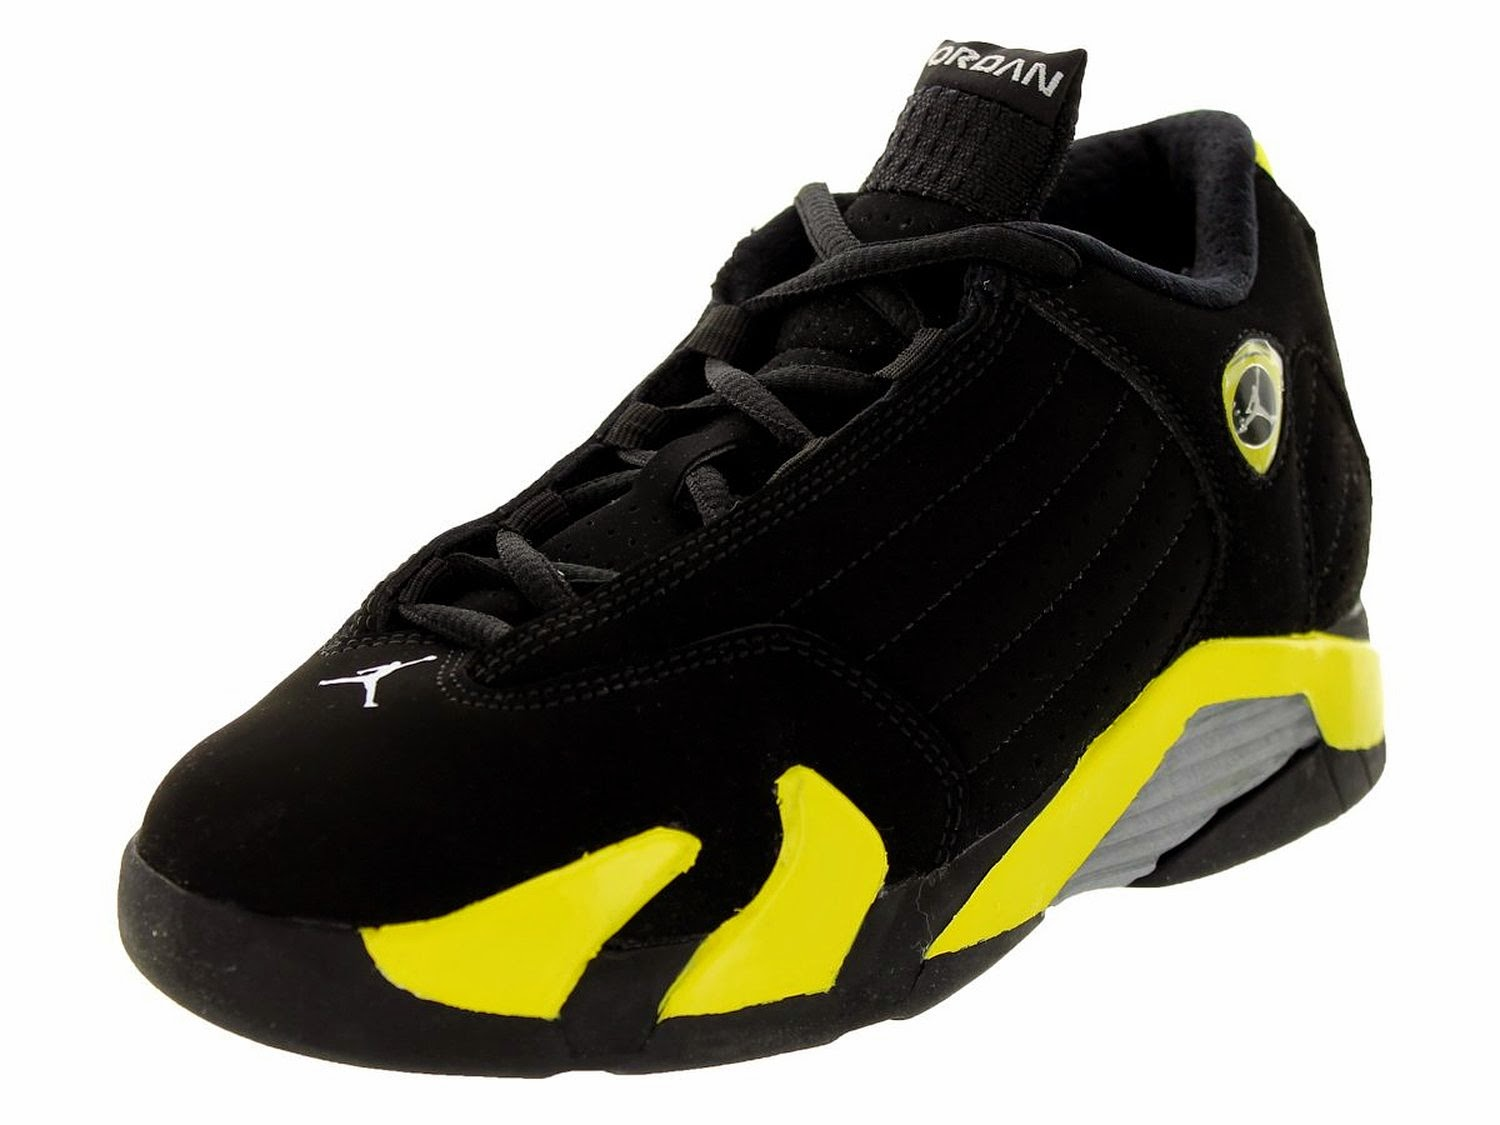 f6e5997b68ba48 Nike Jordan Kids Air - Find the best Jordan s product like Nike Jordan Kids  Air Jordan 14 Retro BG Black Vibrant Yellow White Basketball Shoe 7 Kids US.